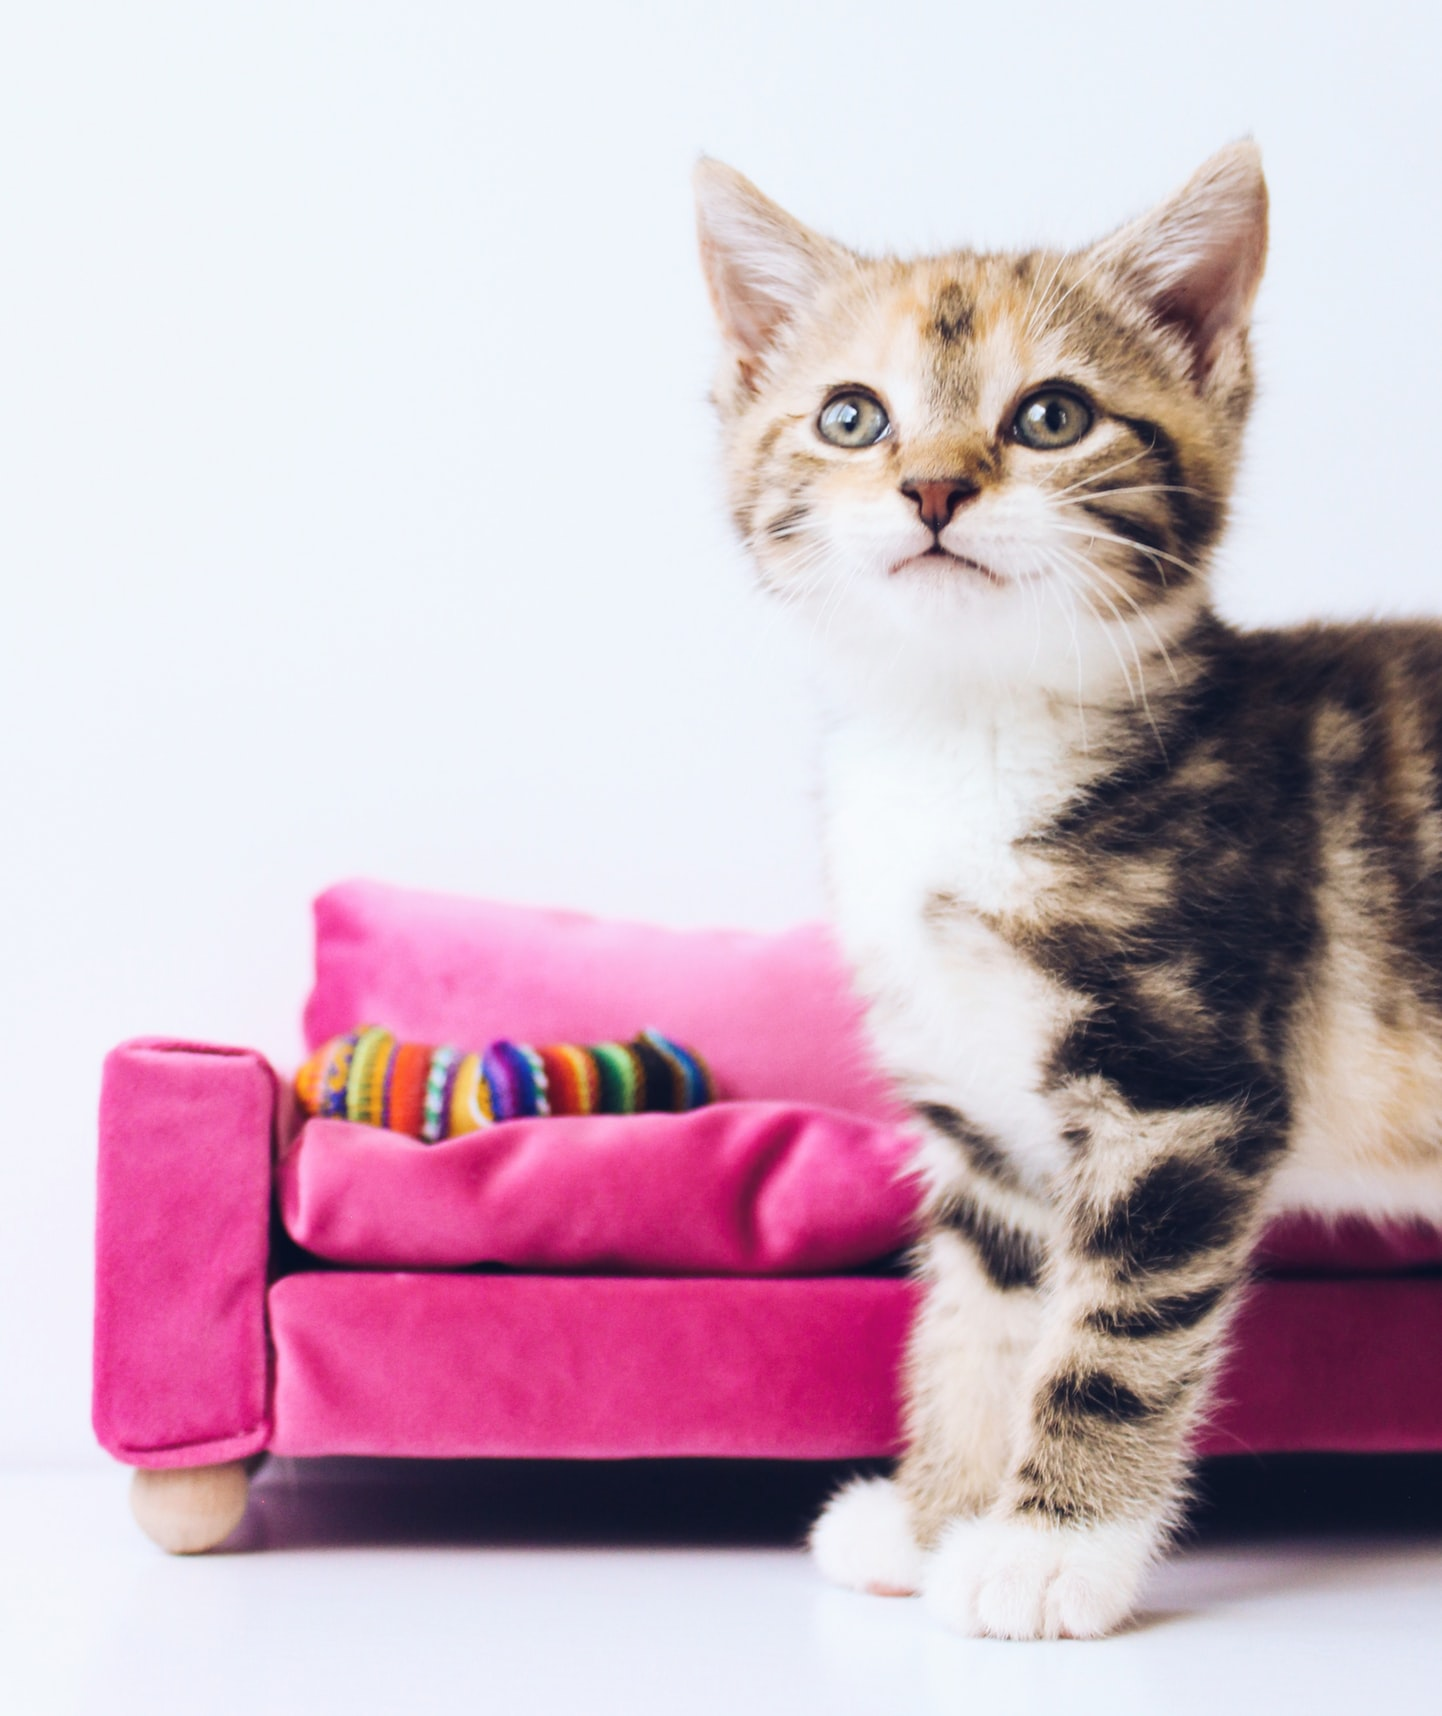 cute tabby kitten with pink couch in the background